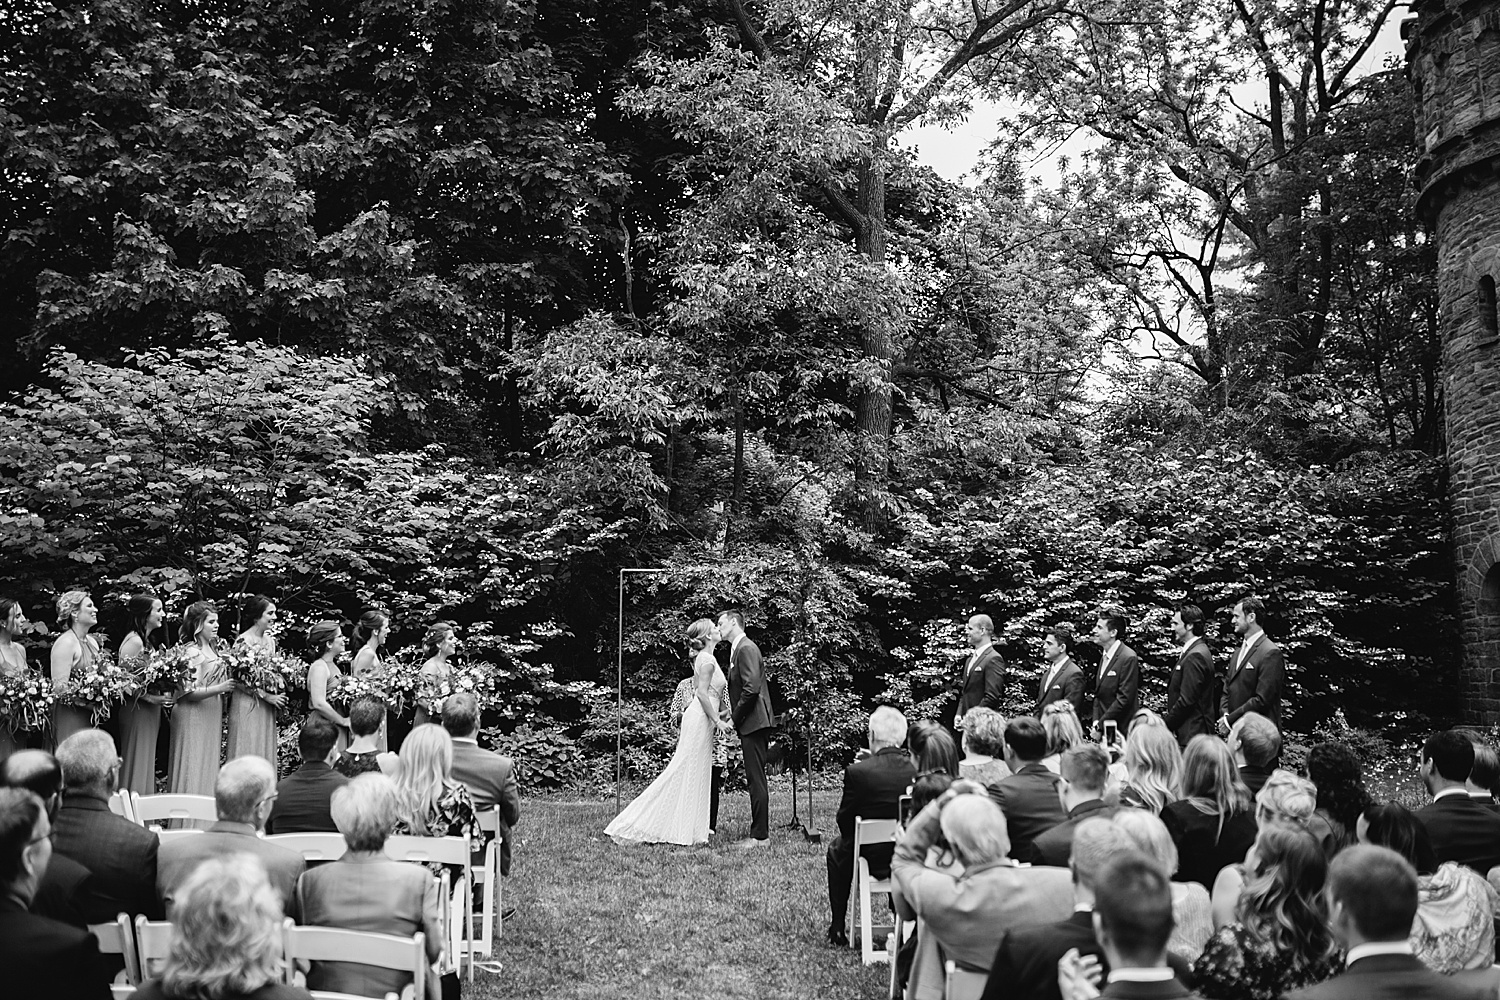 chelseachris_duke_art_gallery_wedding_image_063.jpg